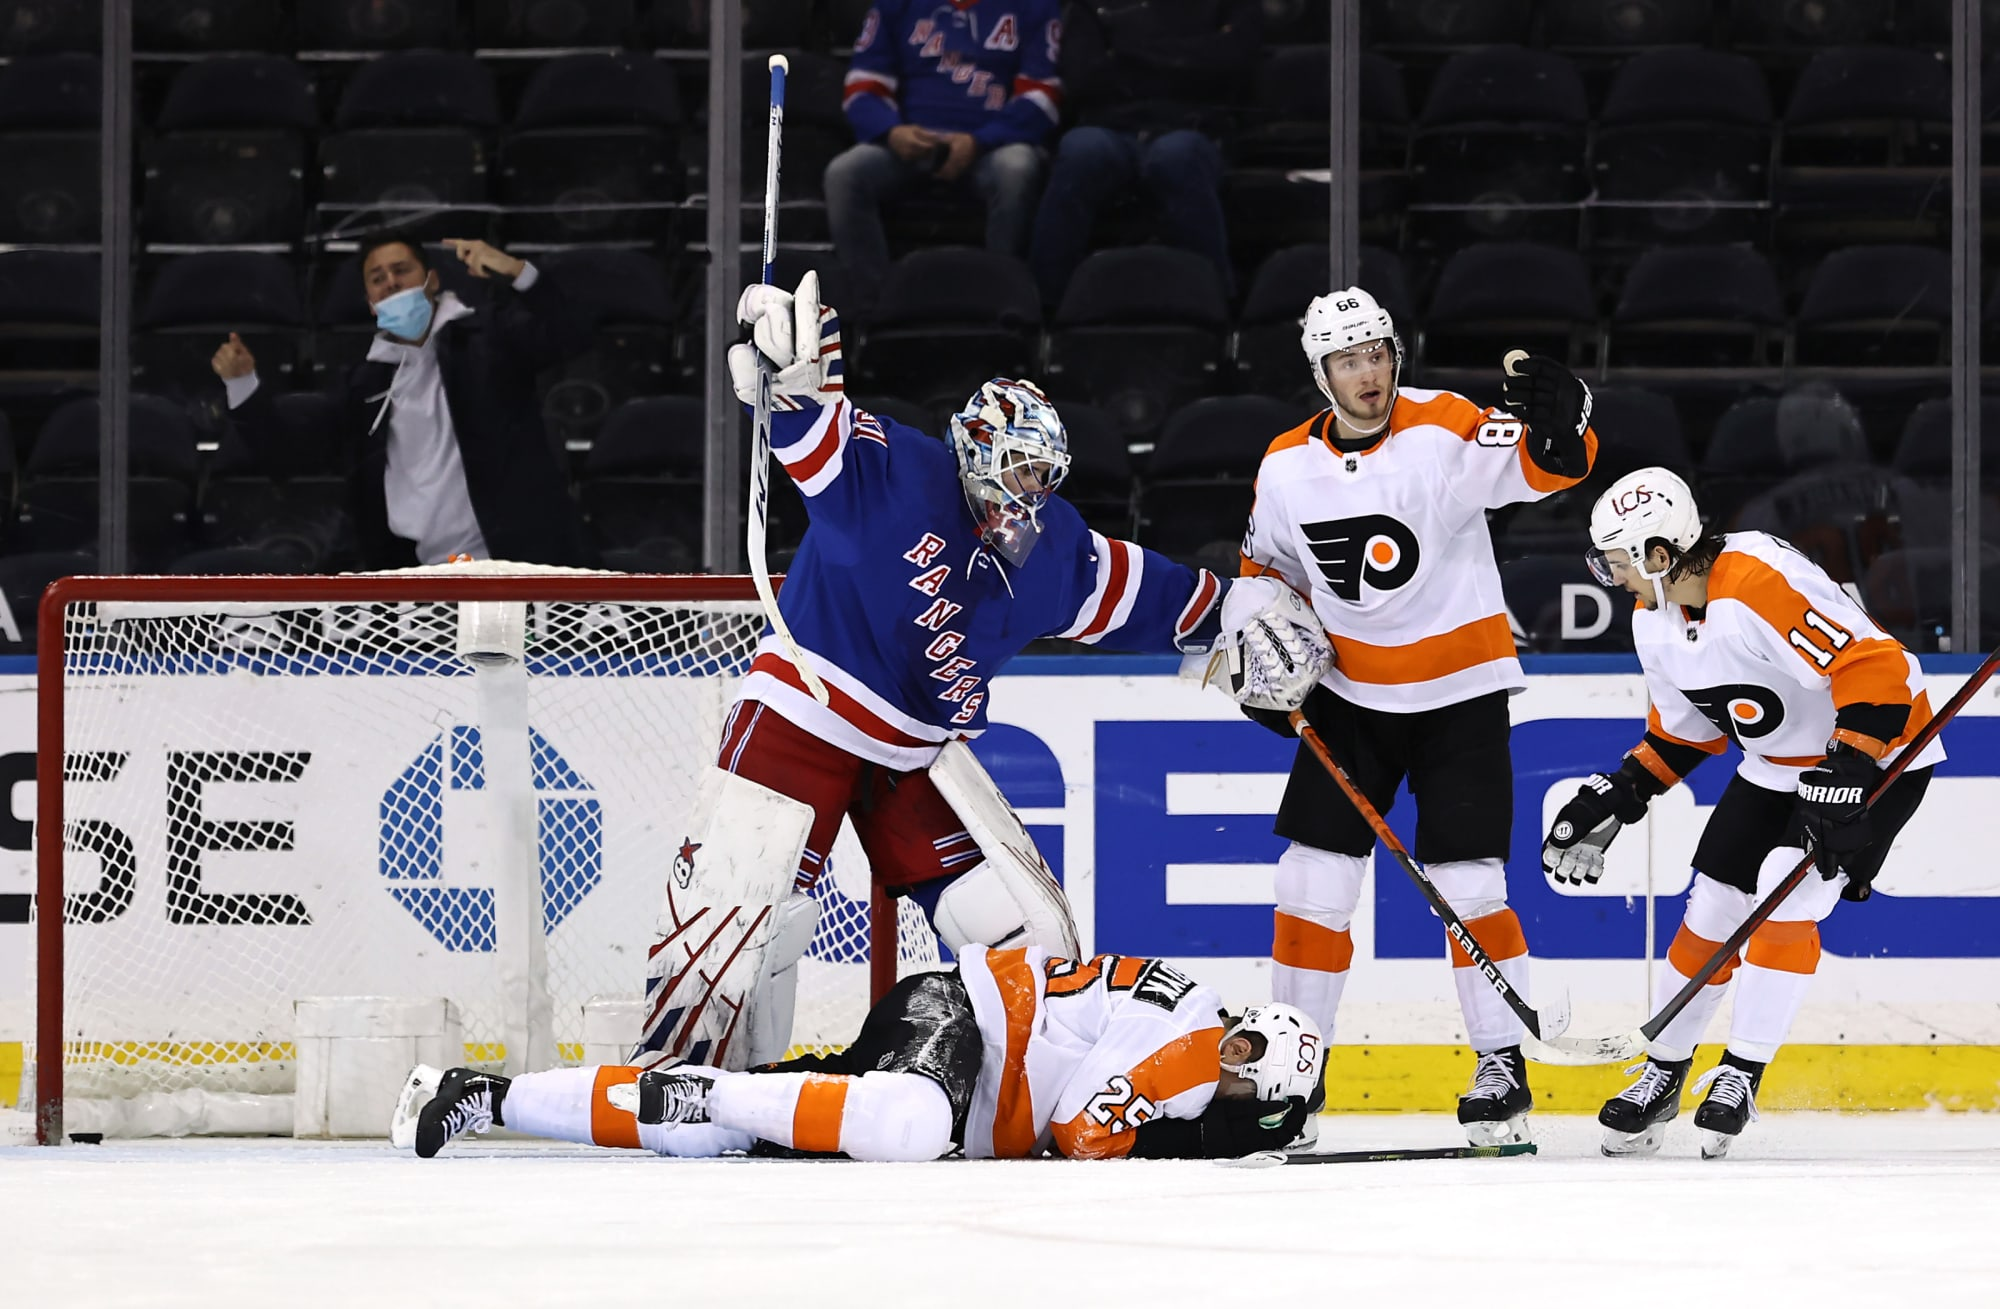 Rangers lose to Flyers 3-2 and it's time to play the kids